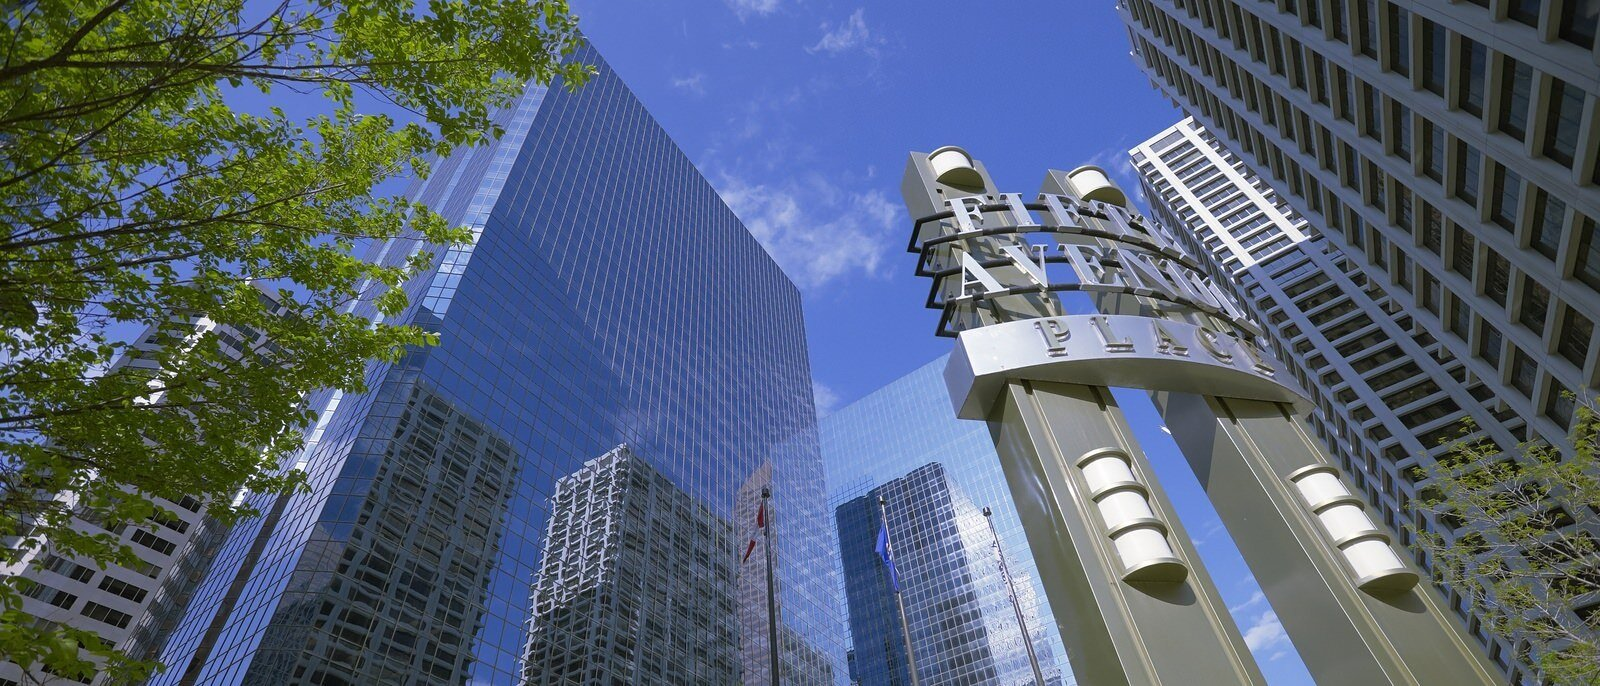 """View looking up a building with a sign in the foreground that says """"Fifth Avenue Place"""""""